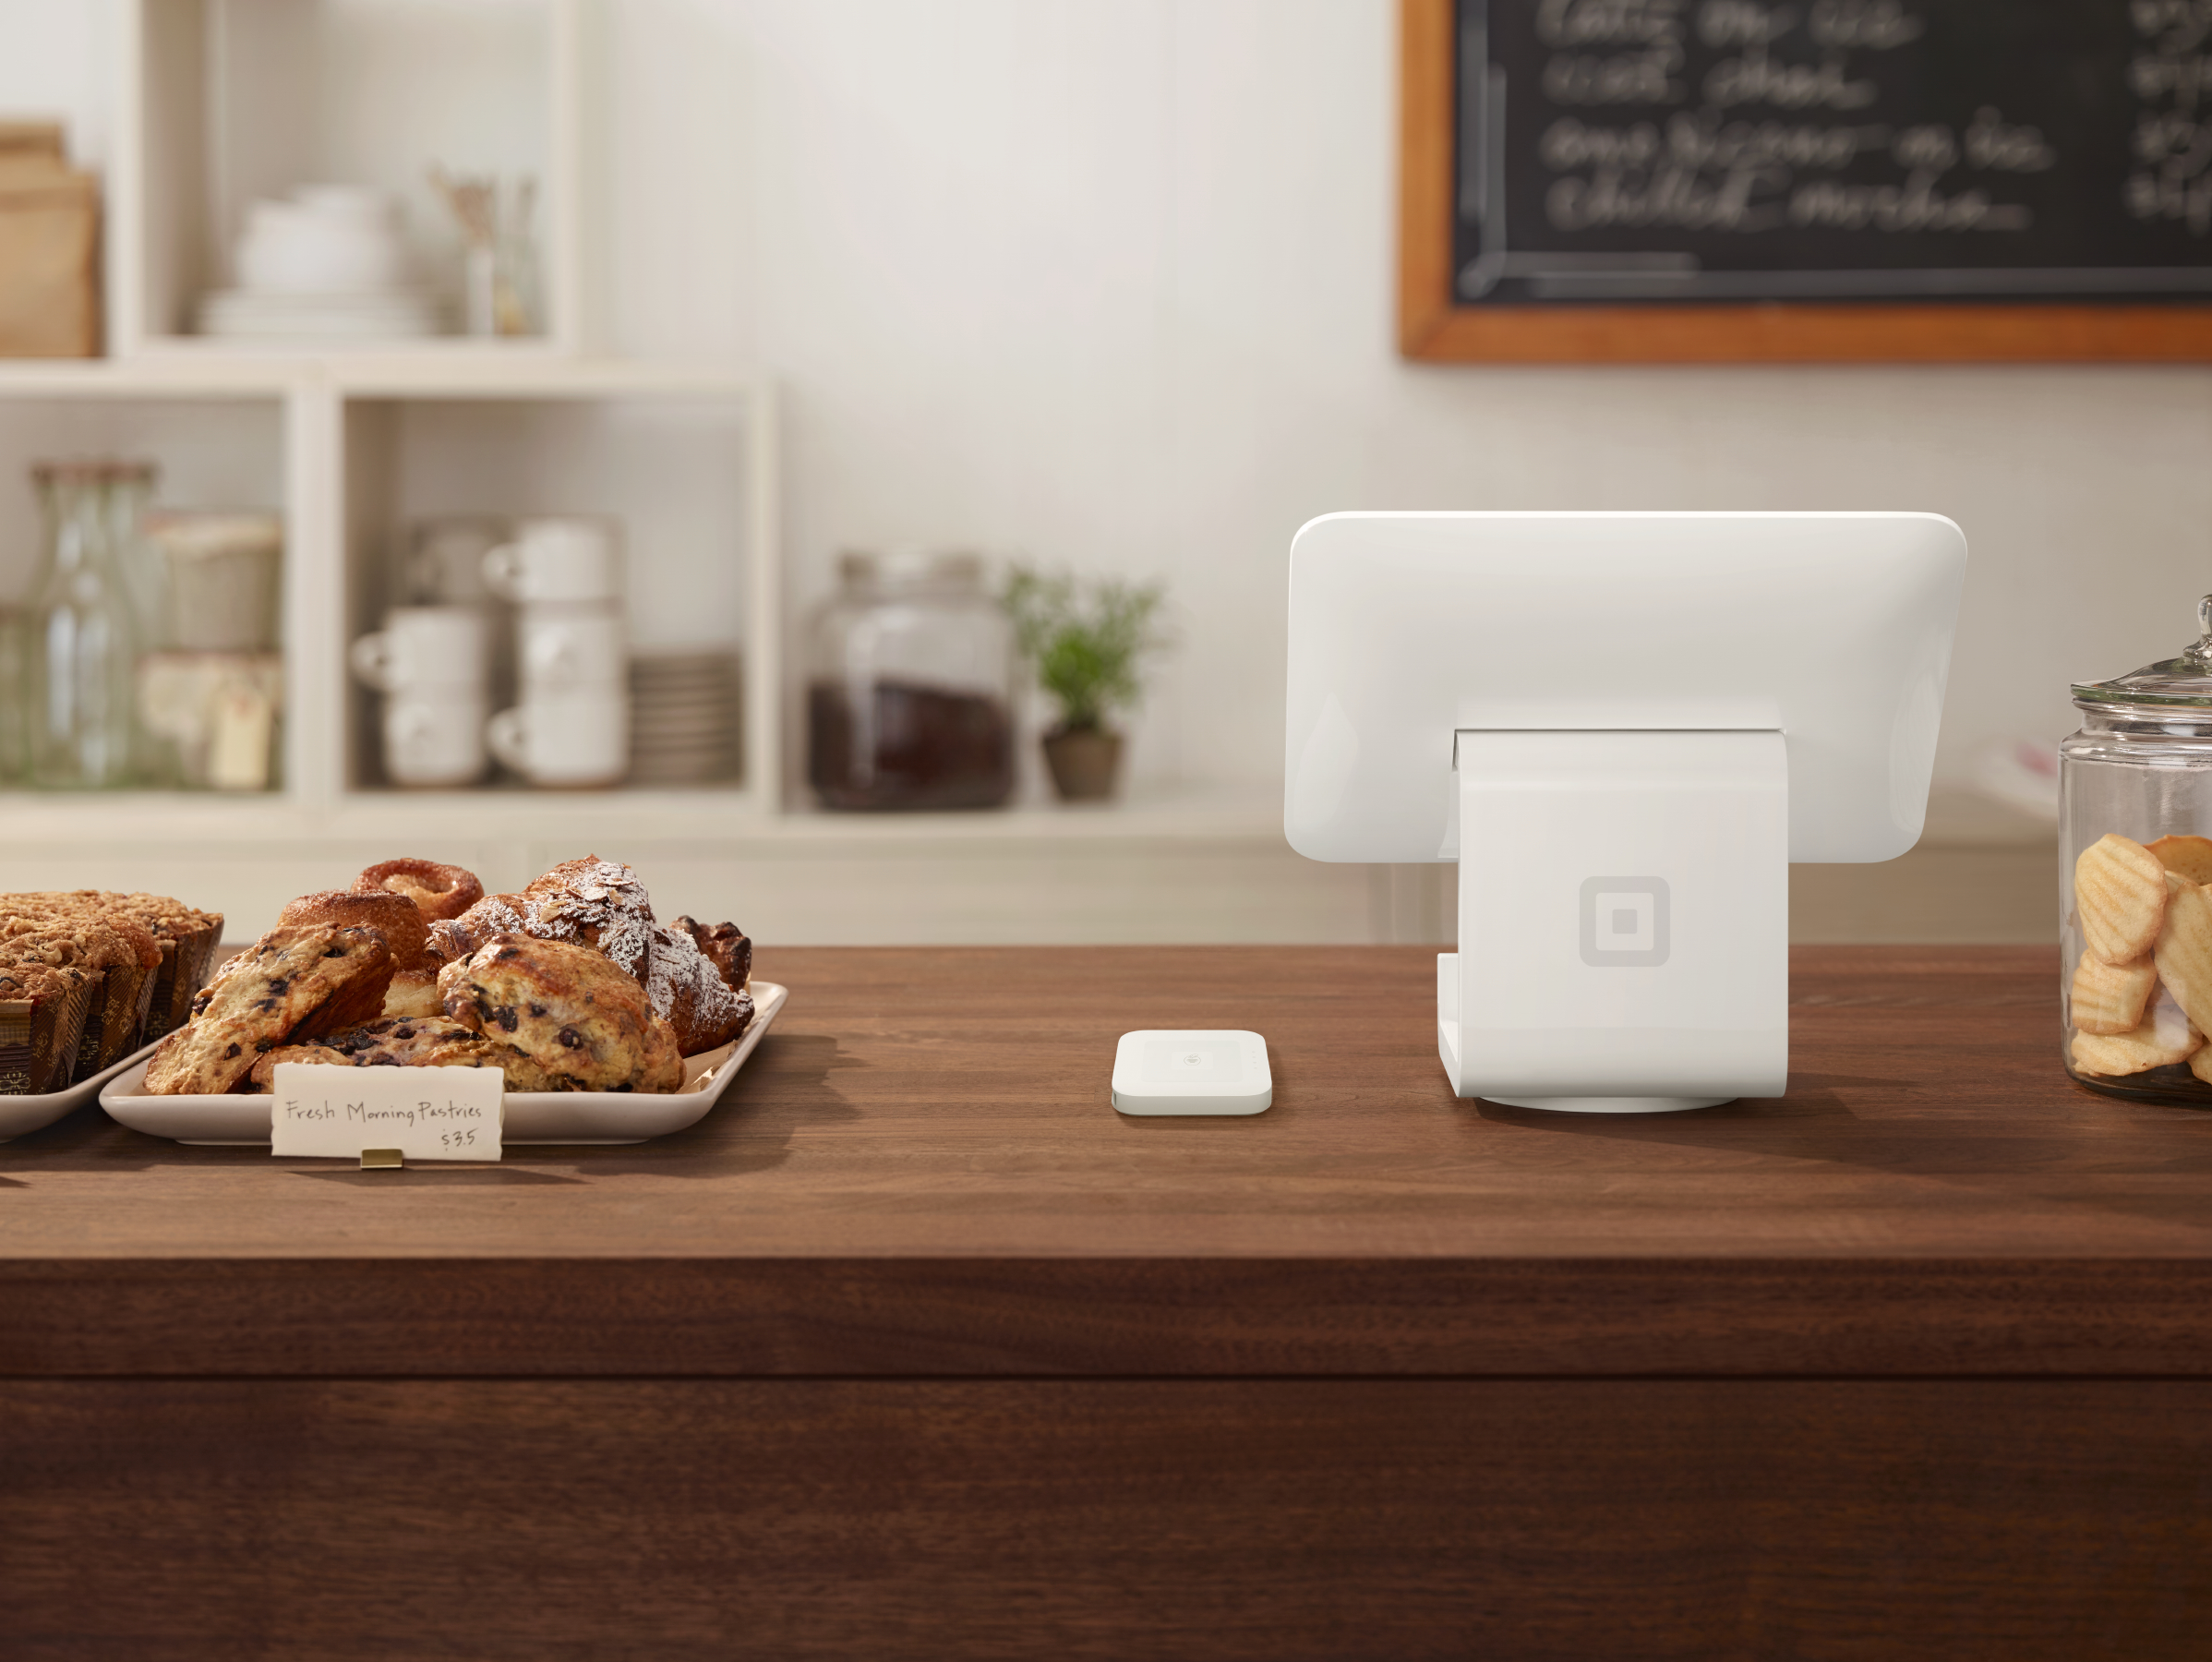 Square's Fee Increase Isn't Great News for Coffee Shops or Their Customers